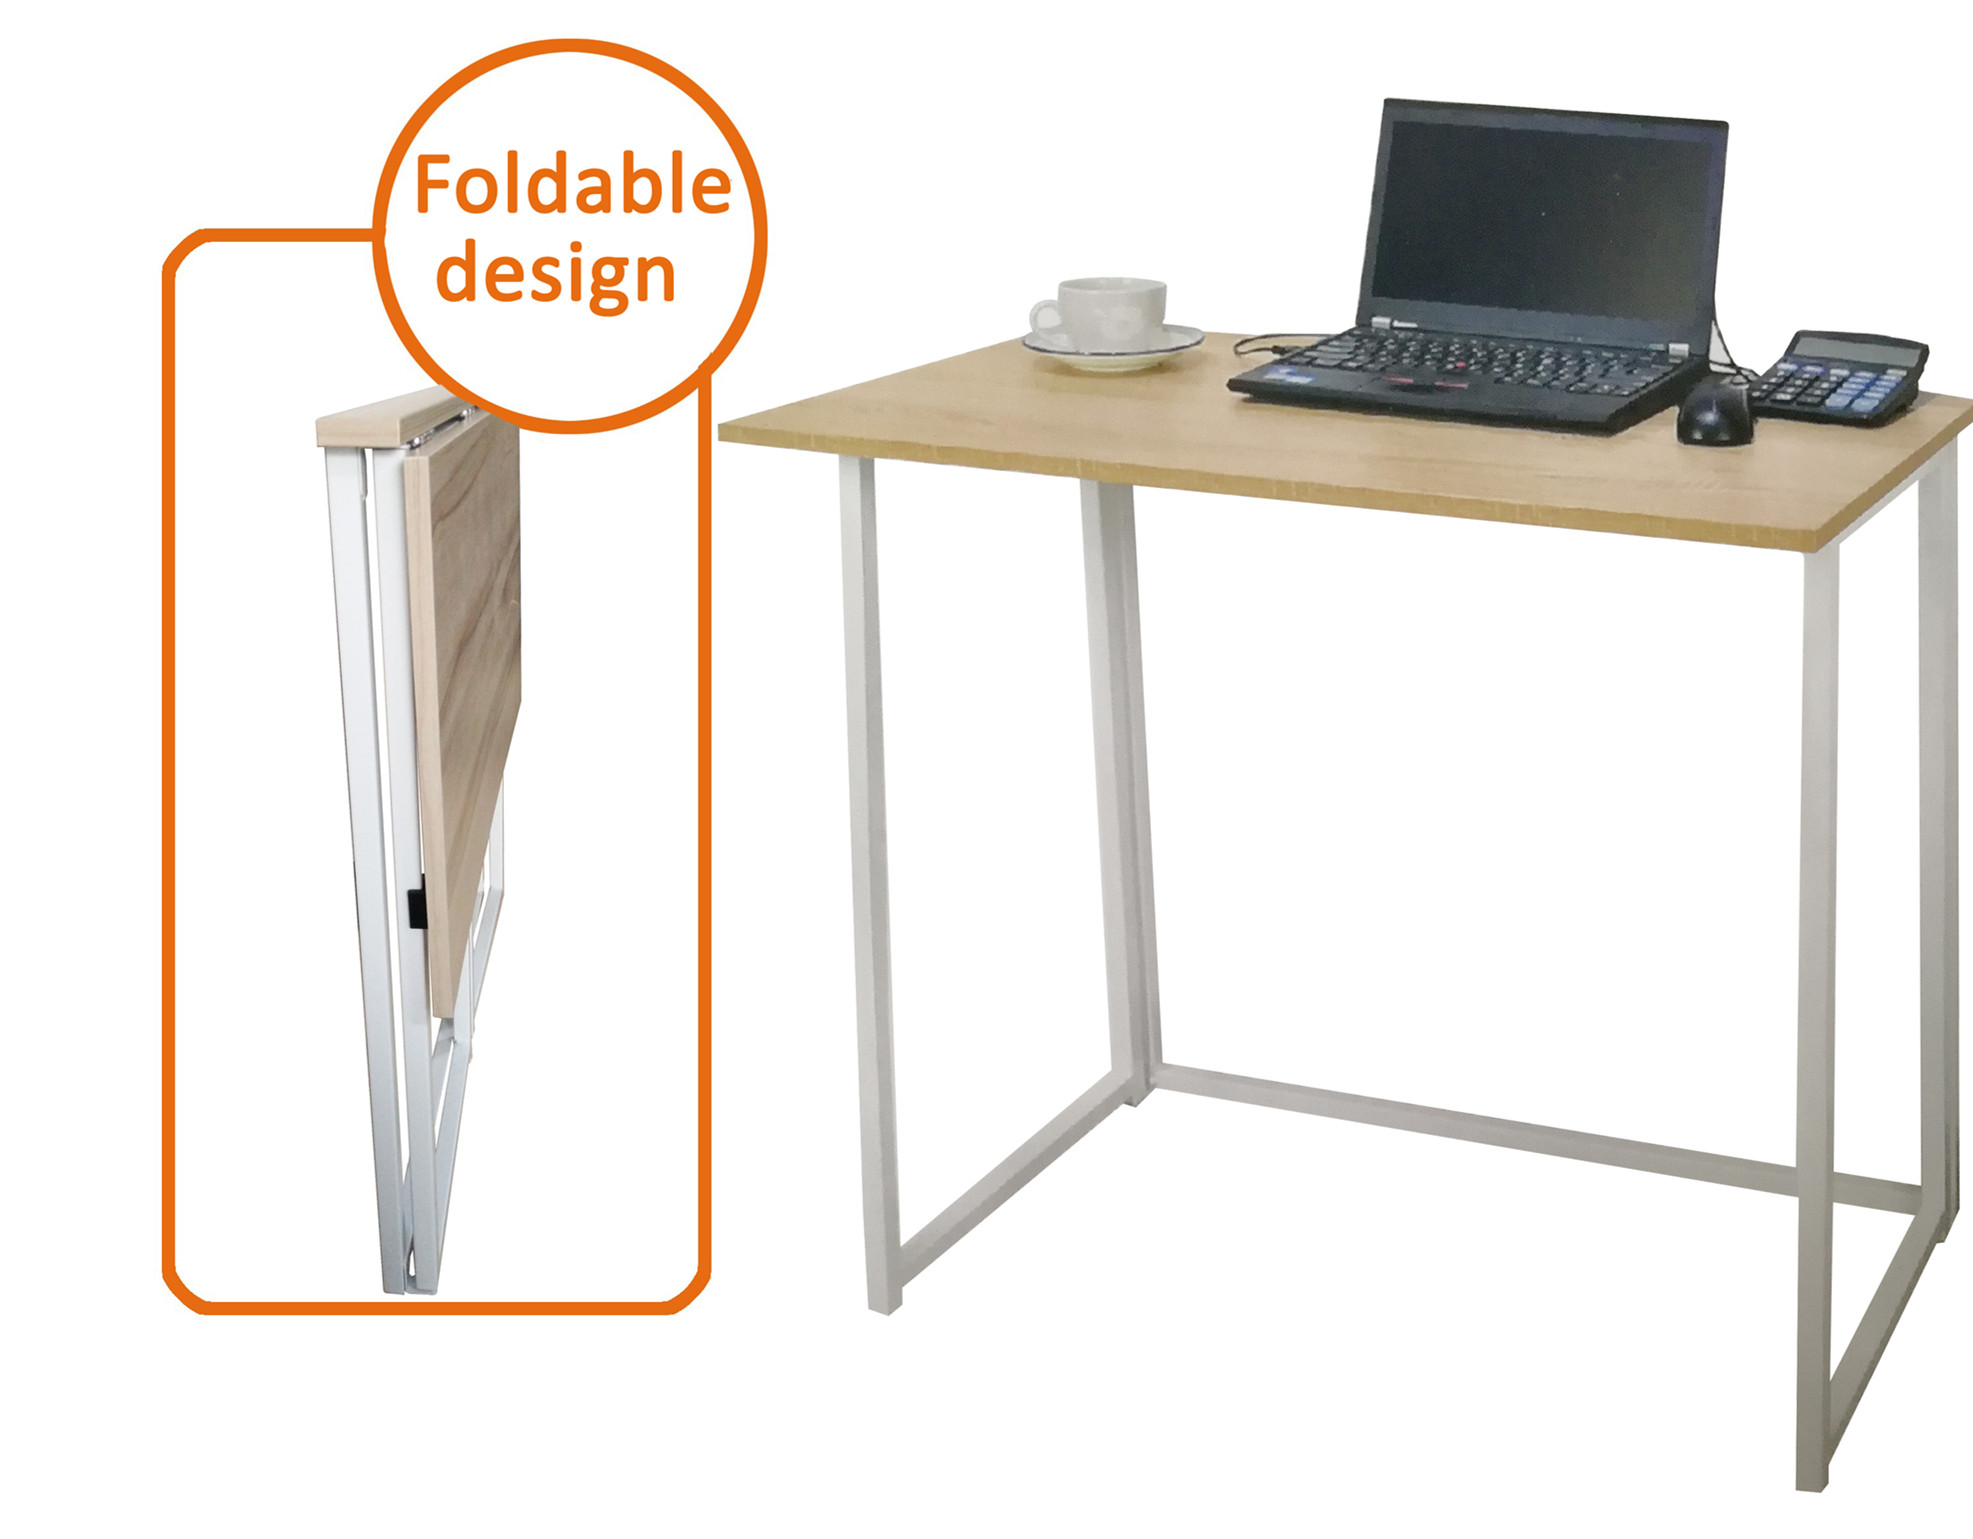 Commercial Furniture General Use and Computer Specific Used Folding Computer Desk Wholesale